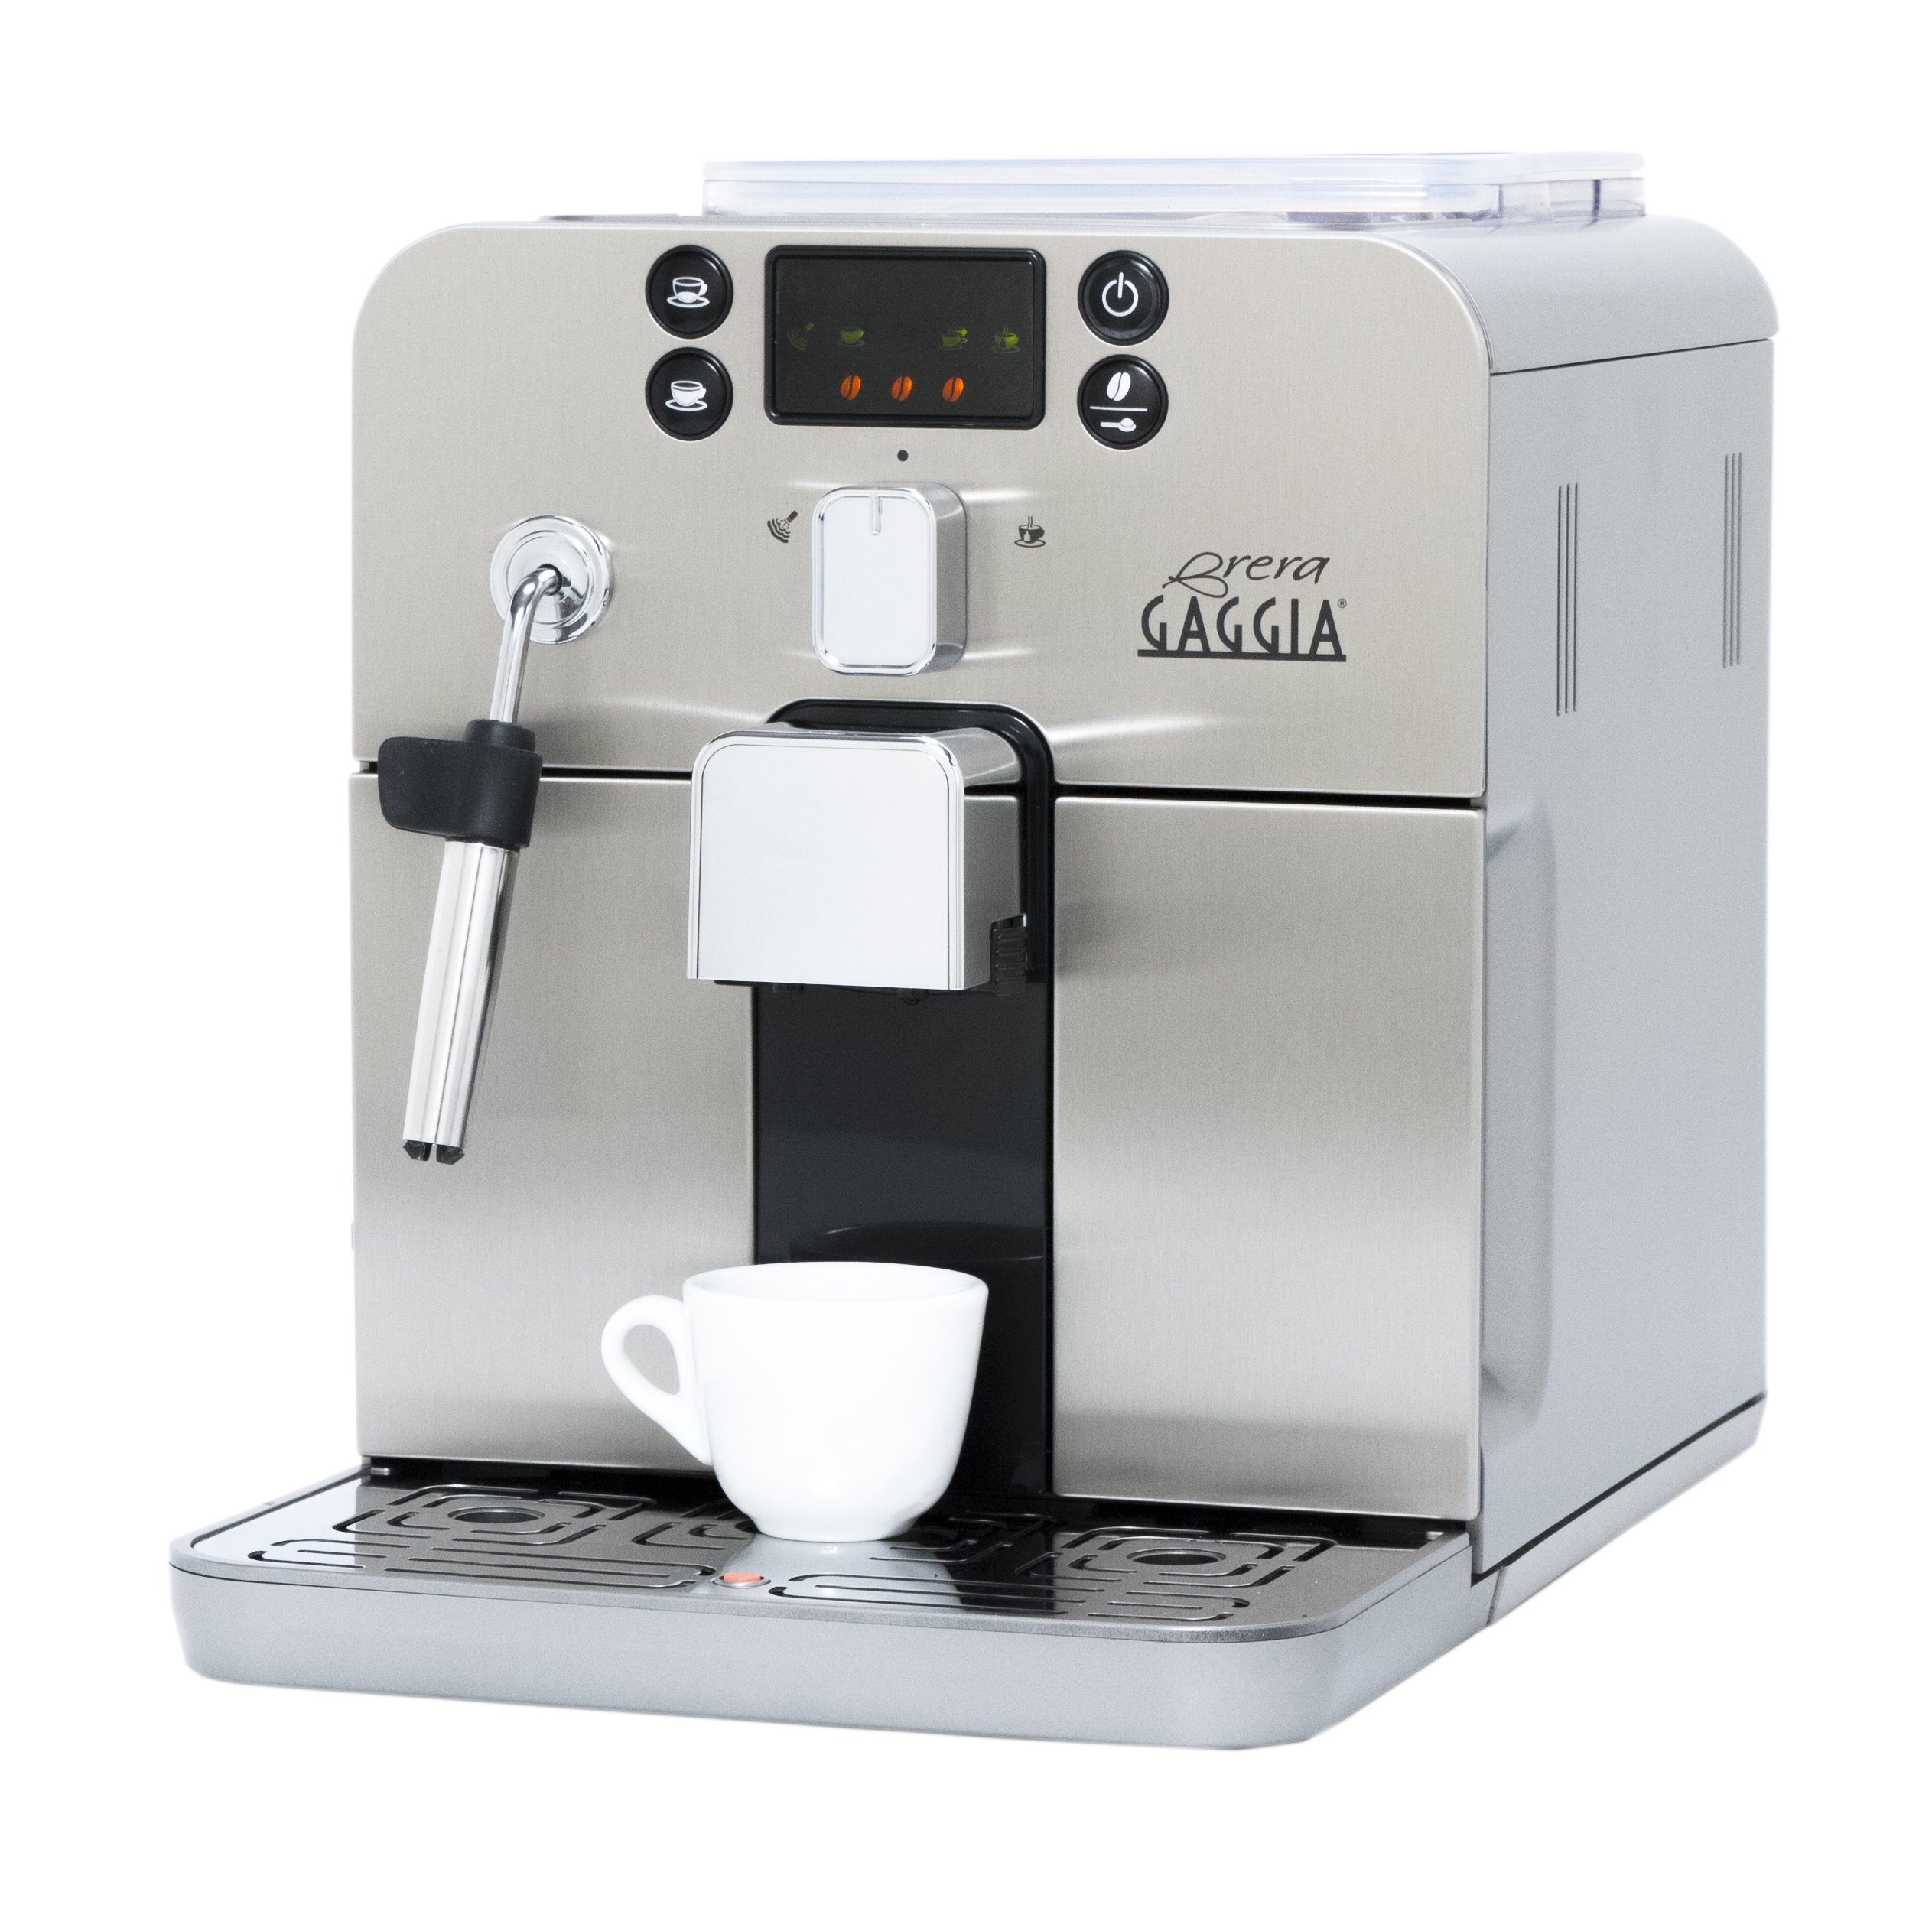 Gaggia Brera Super Automatic Espresso Machine in Silver